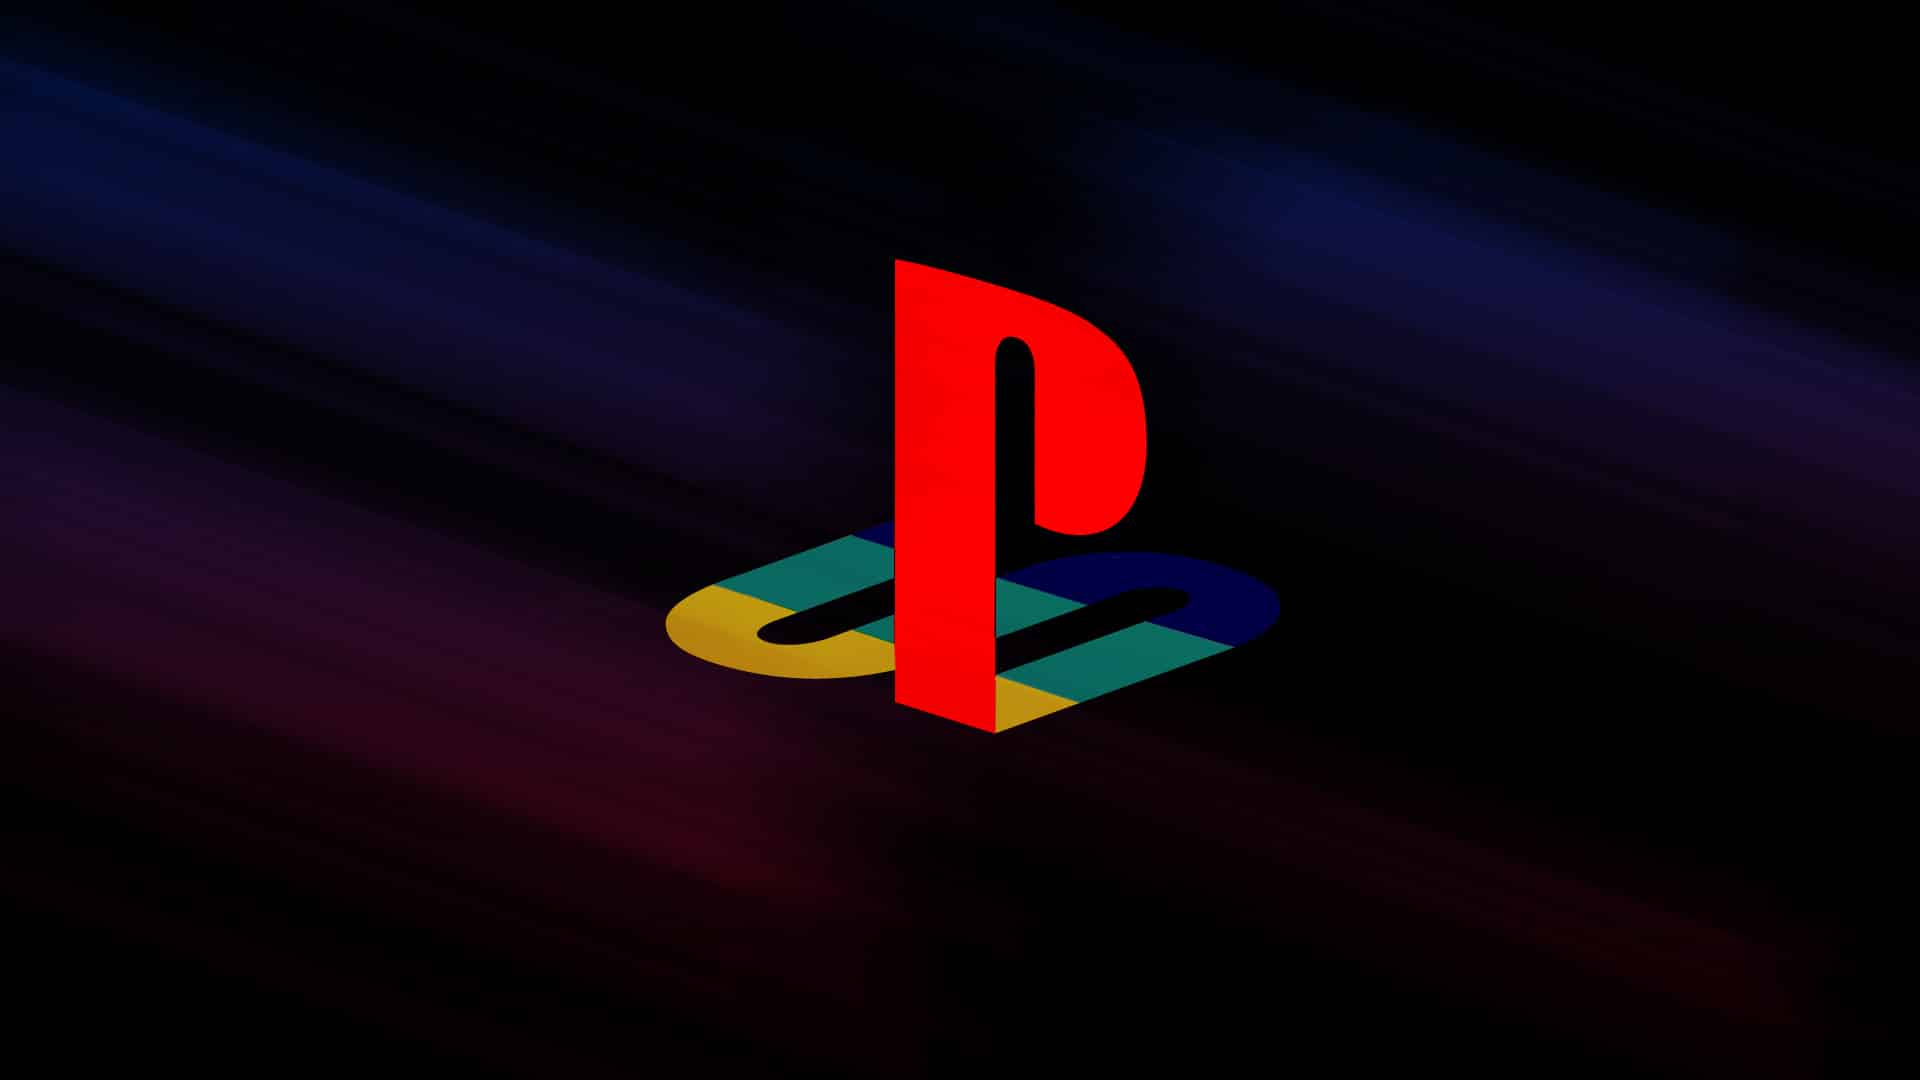 Sony announces the PlayStation ClassicConsole